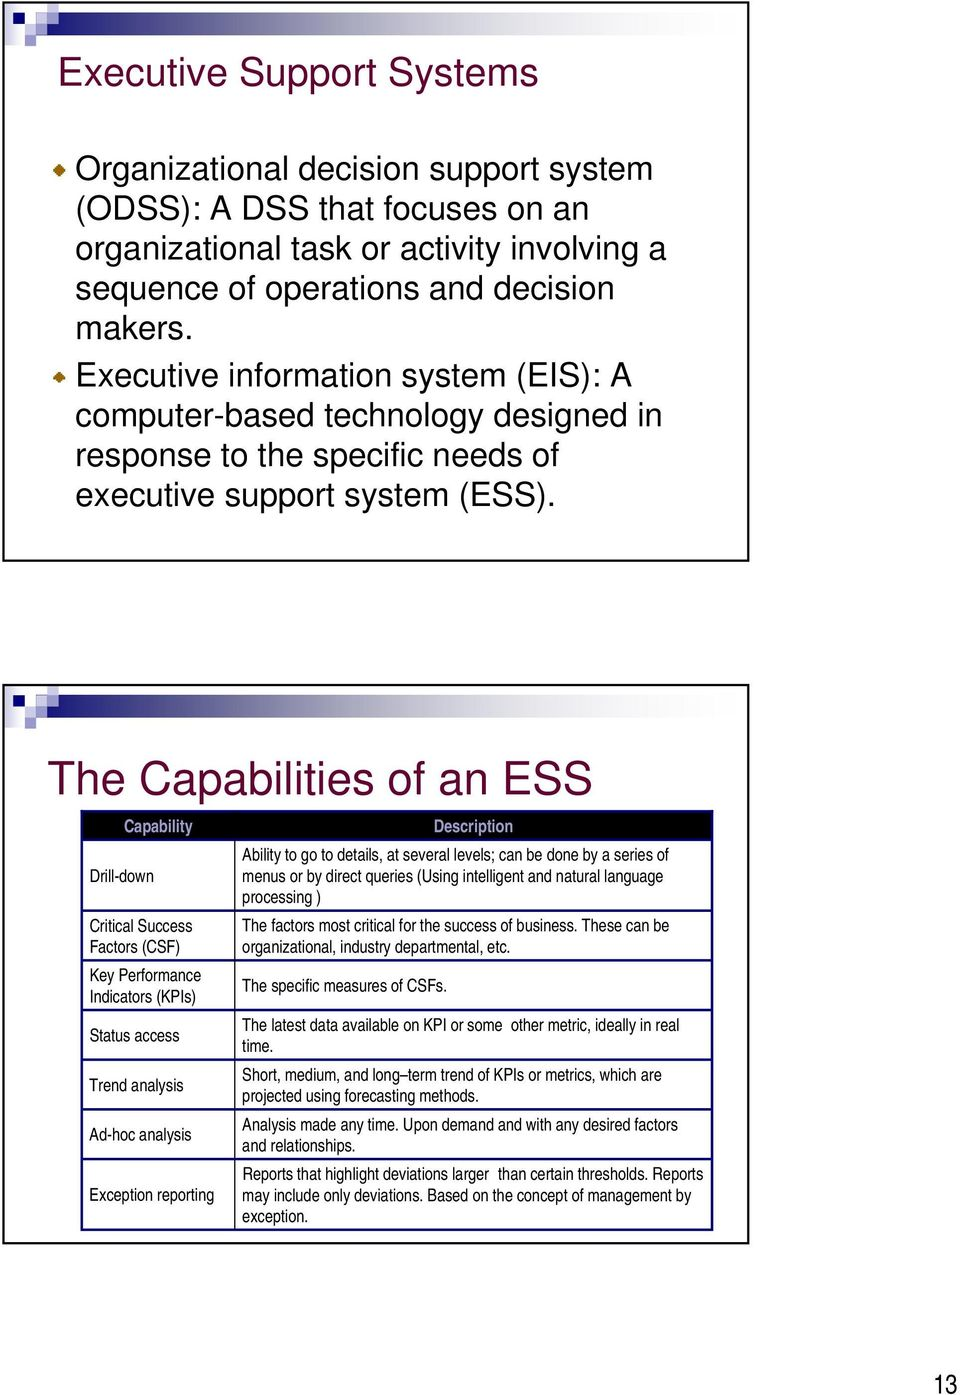 The Capabilities of an ESS Capability Drill-down Critical Success Factors (CSF) Key Performance Indicators (KPIs) Status access Trend analysis Ad-hoc analysis Exception reporting Ability to go to